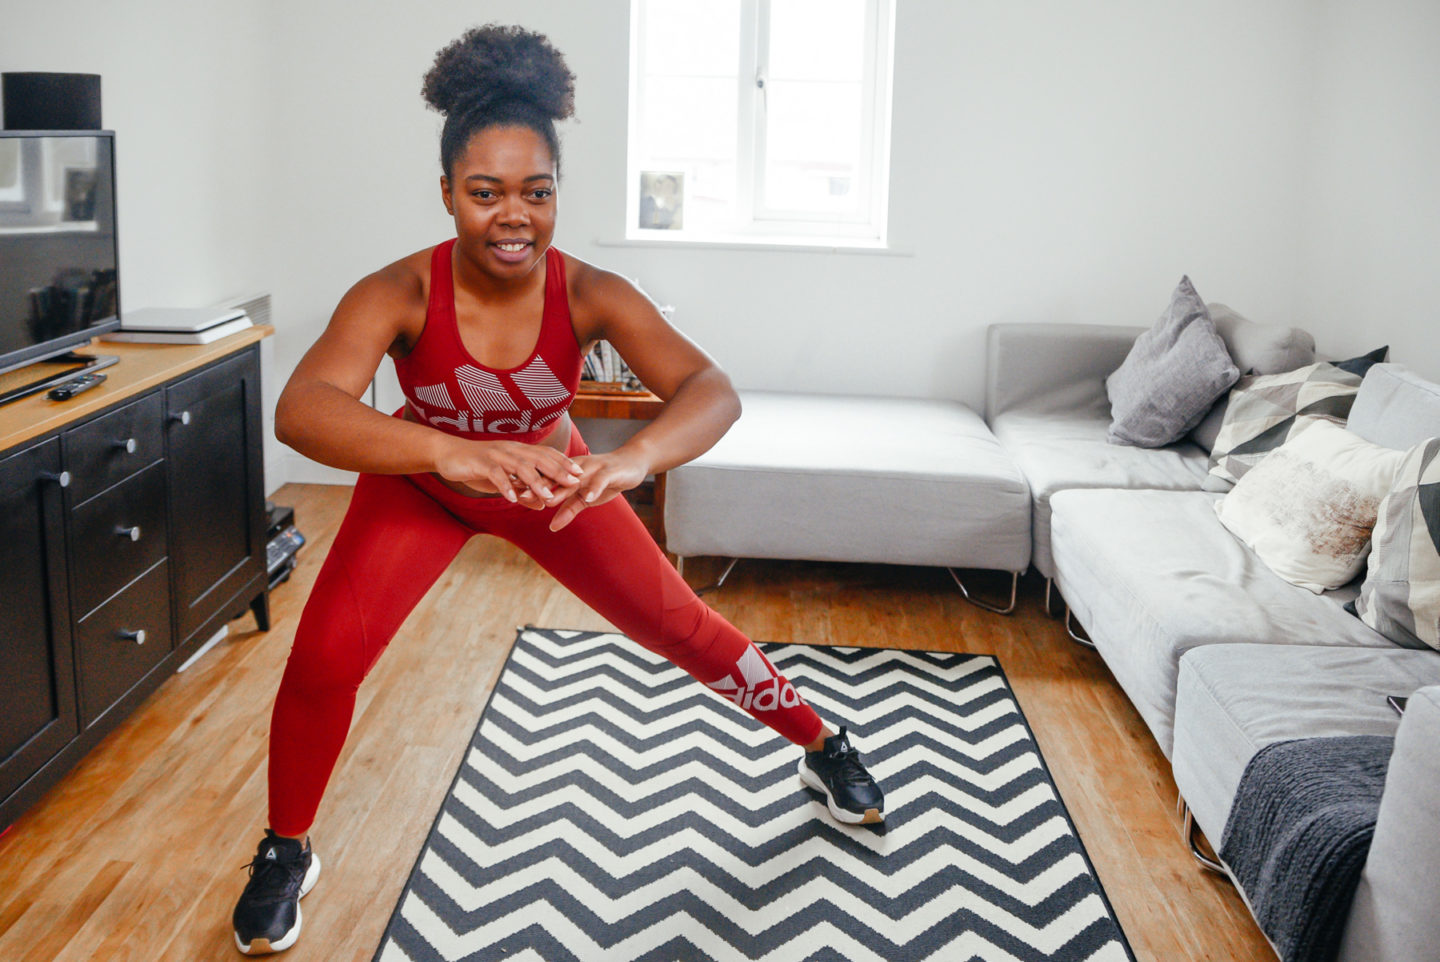 How To Stay Fit By Working Out From Home - Elle in a side lunge position